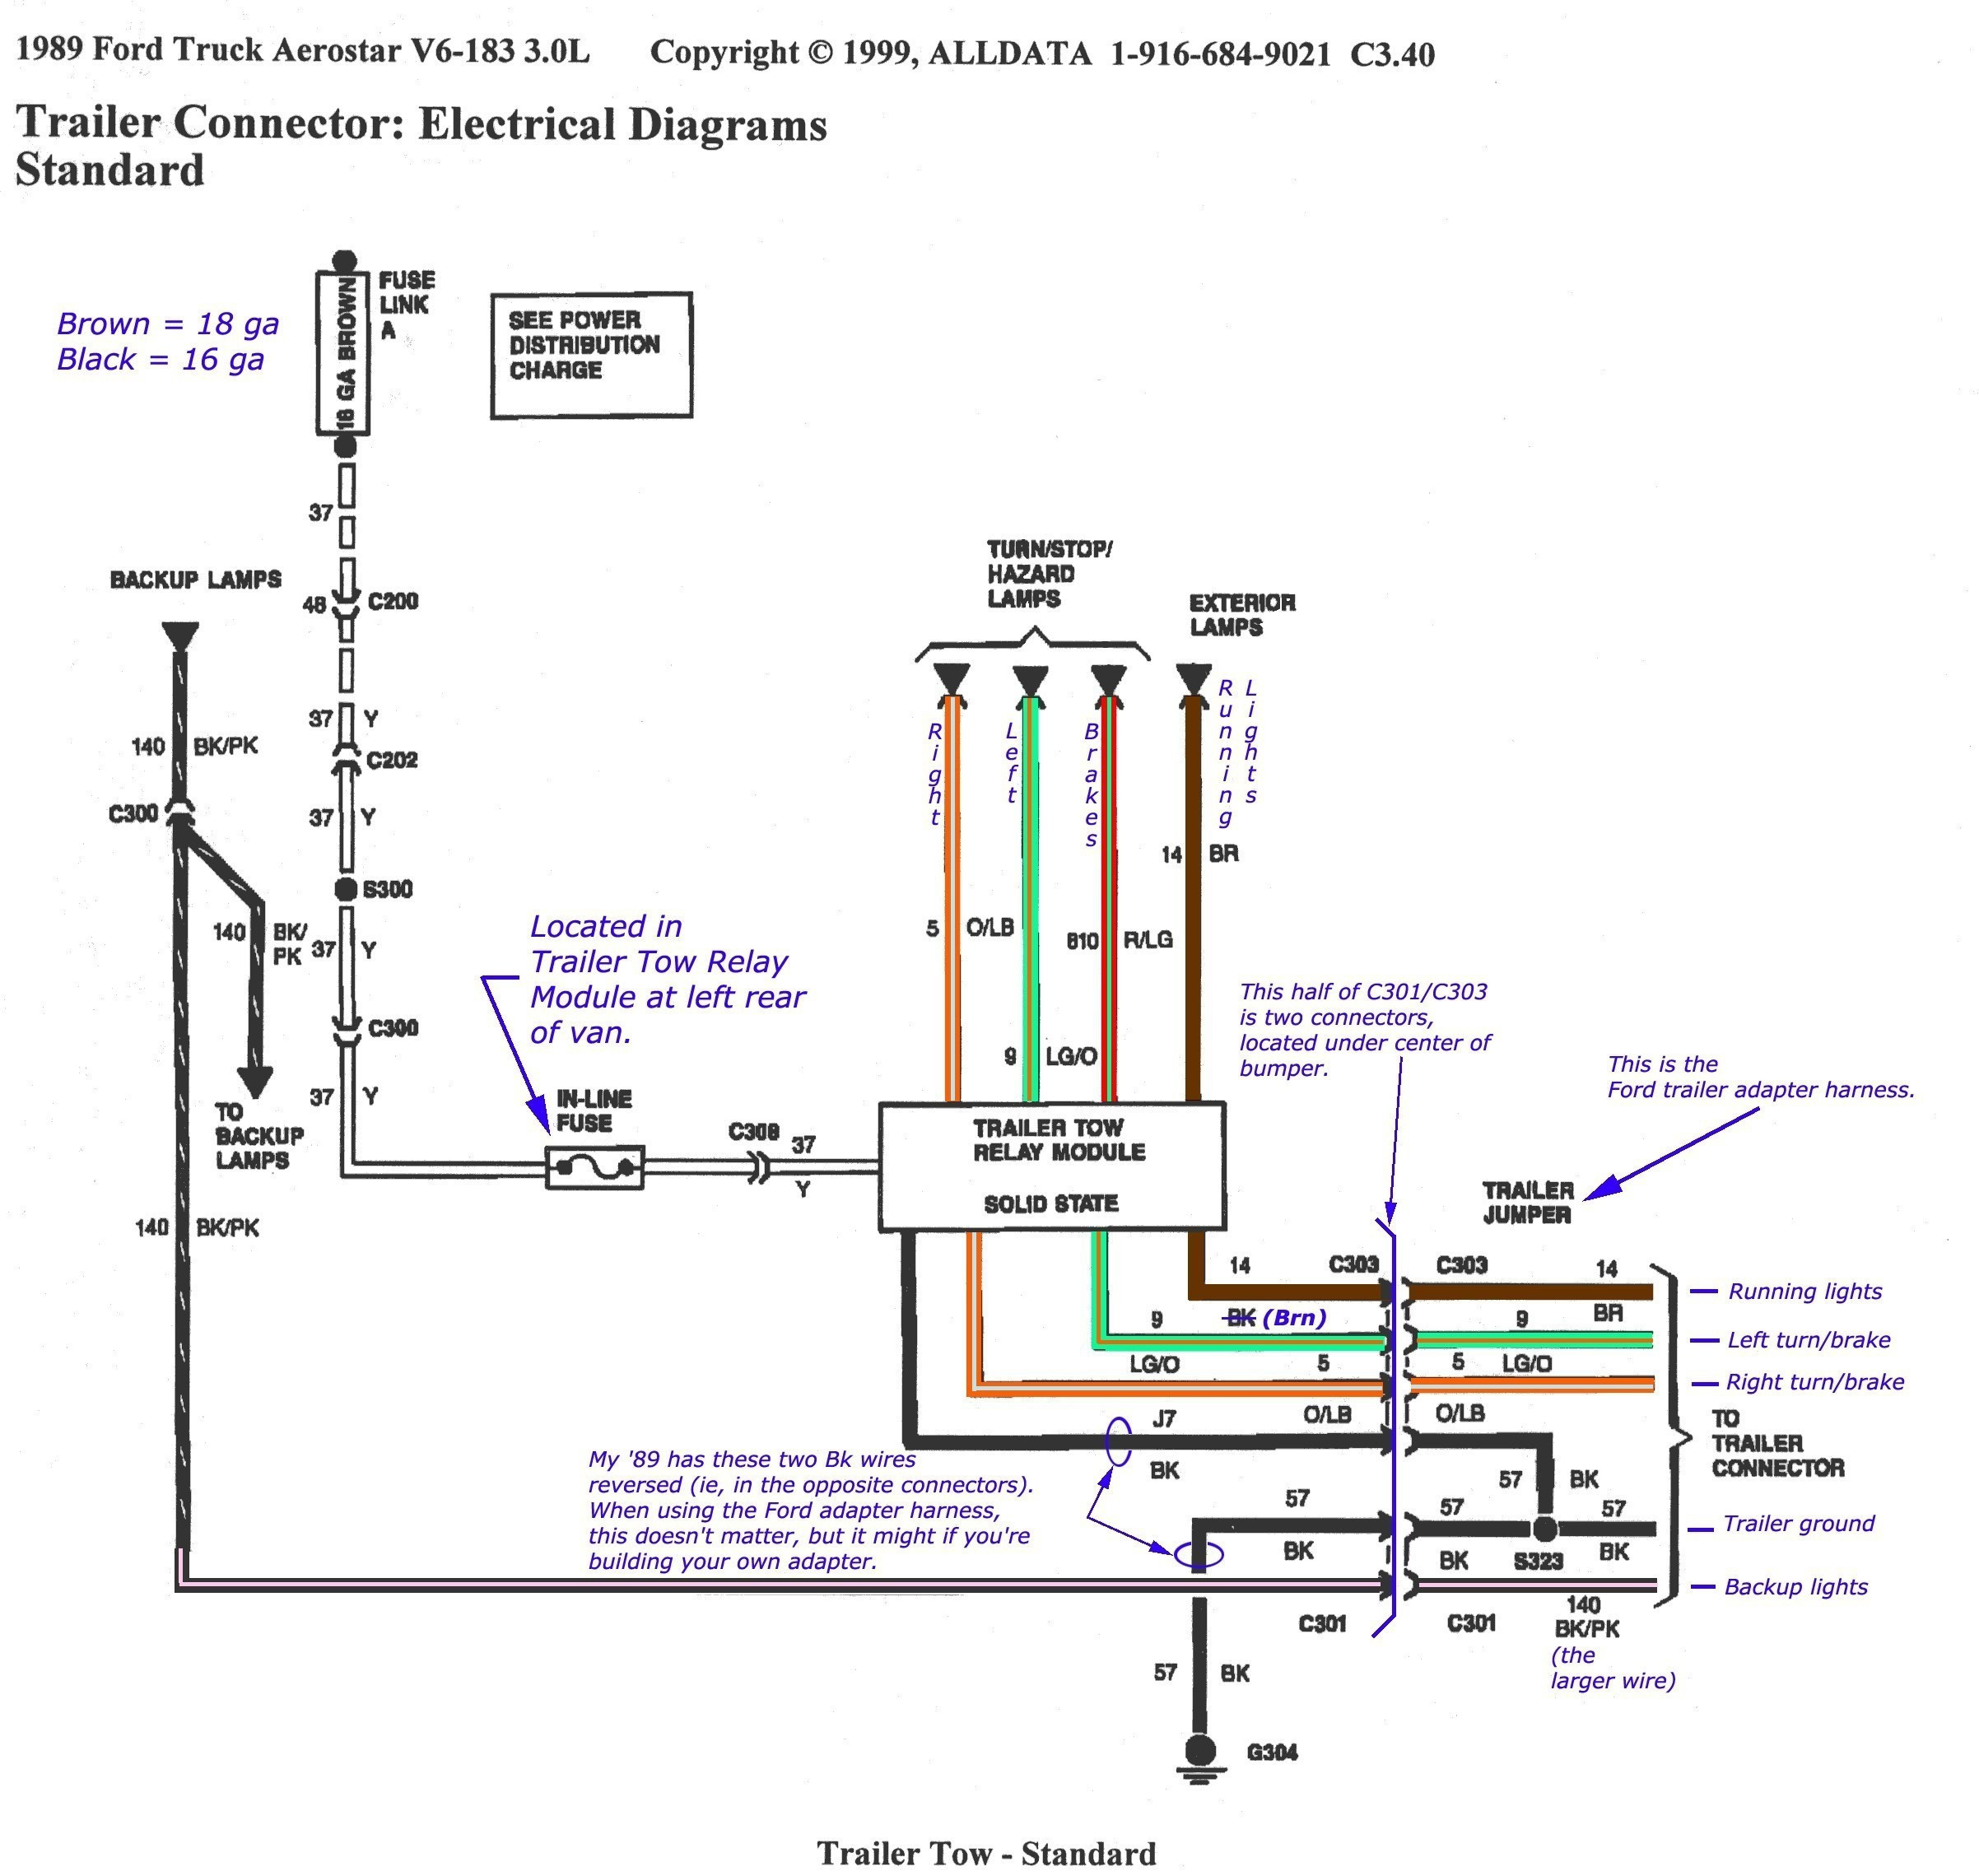 Golf 4 Abs Wiring Diagram Perfect Wiring Diagram For Wabco Abs Best - Wabco Abs Wiring Diagram